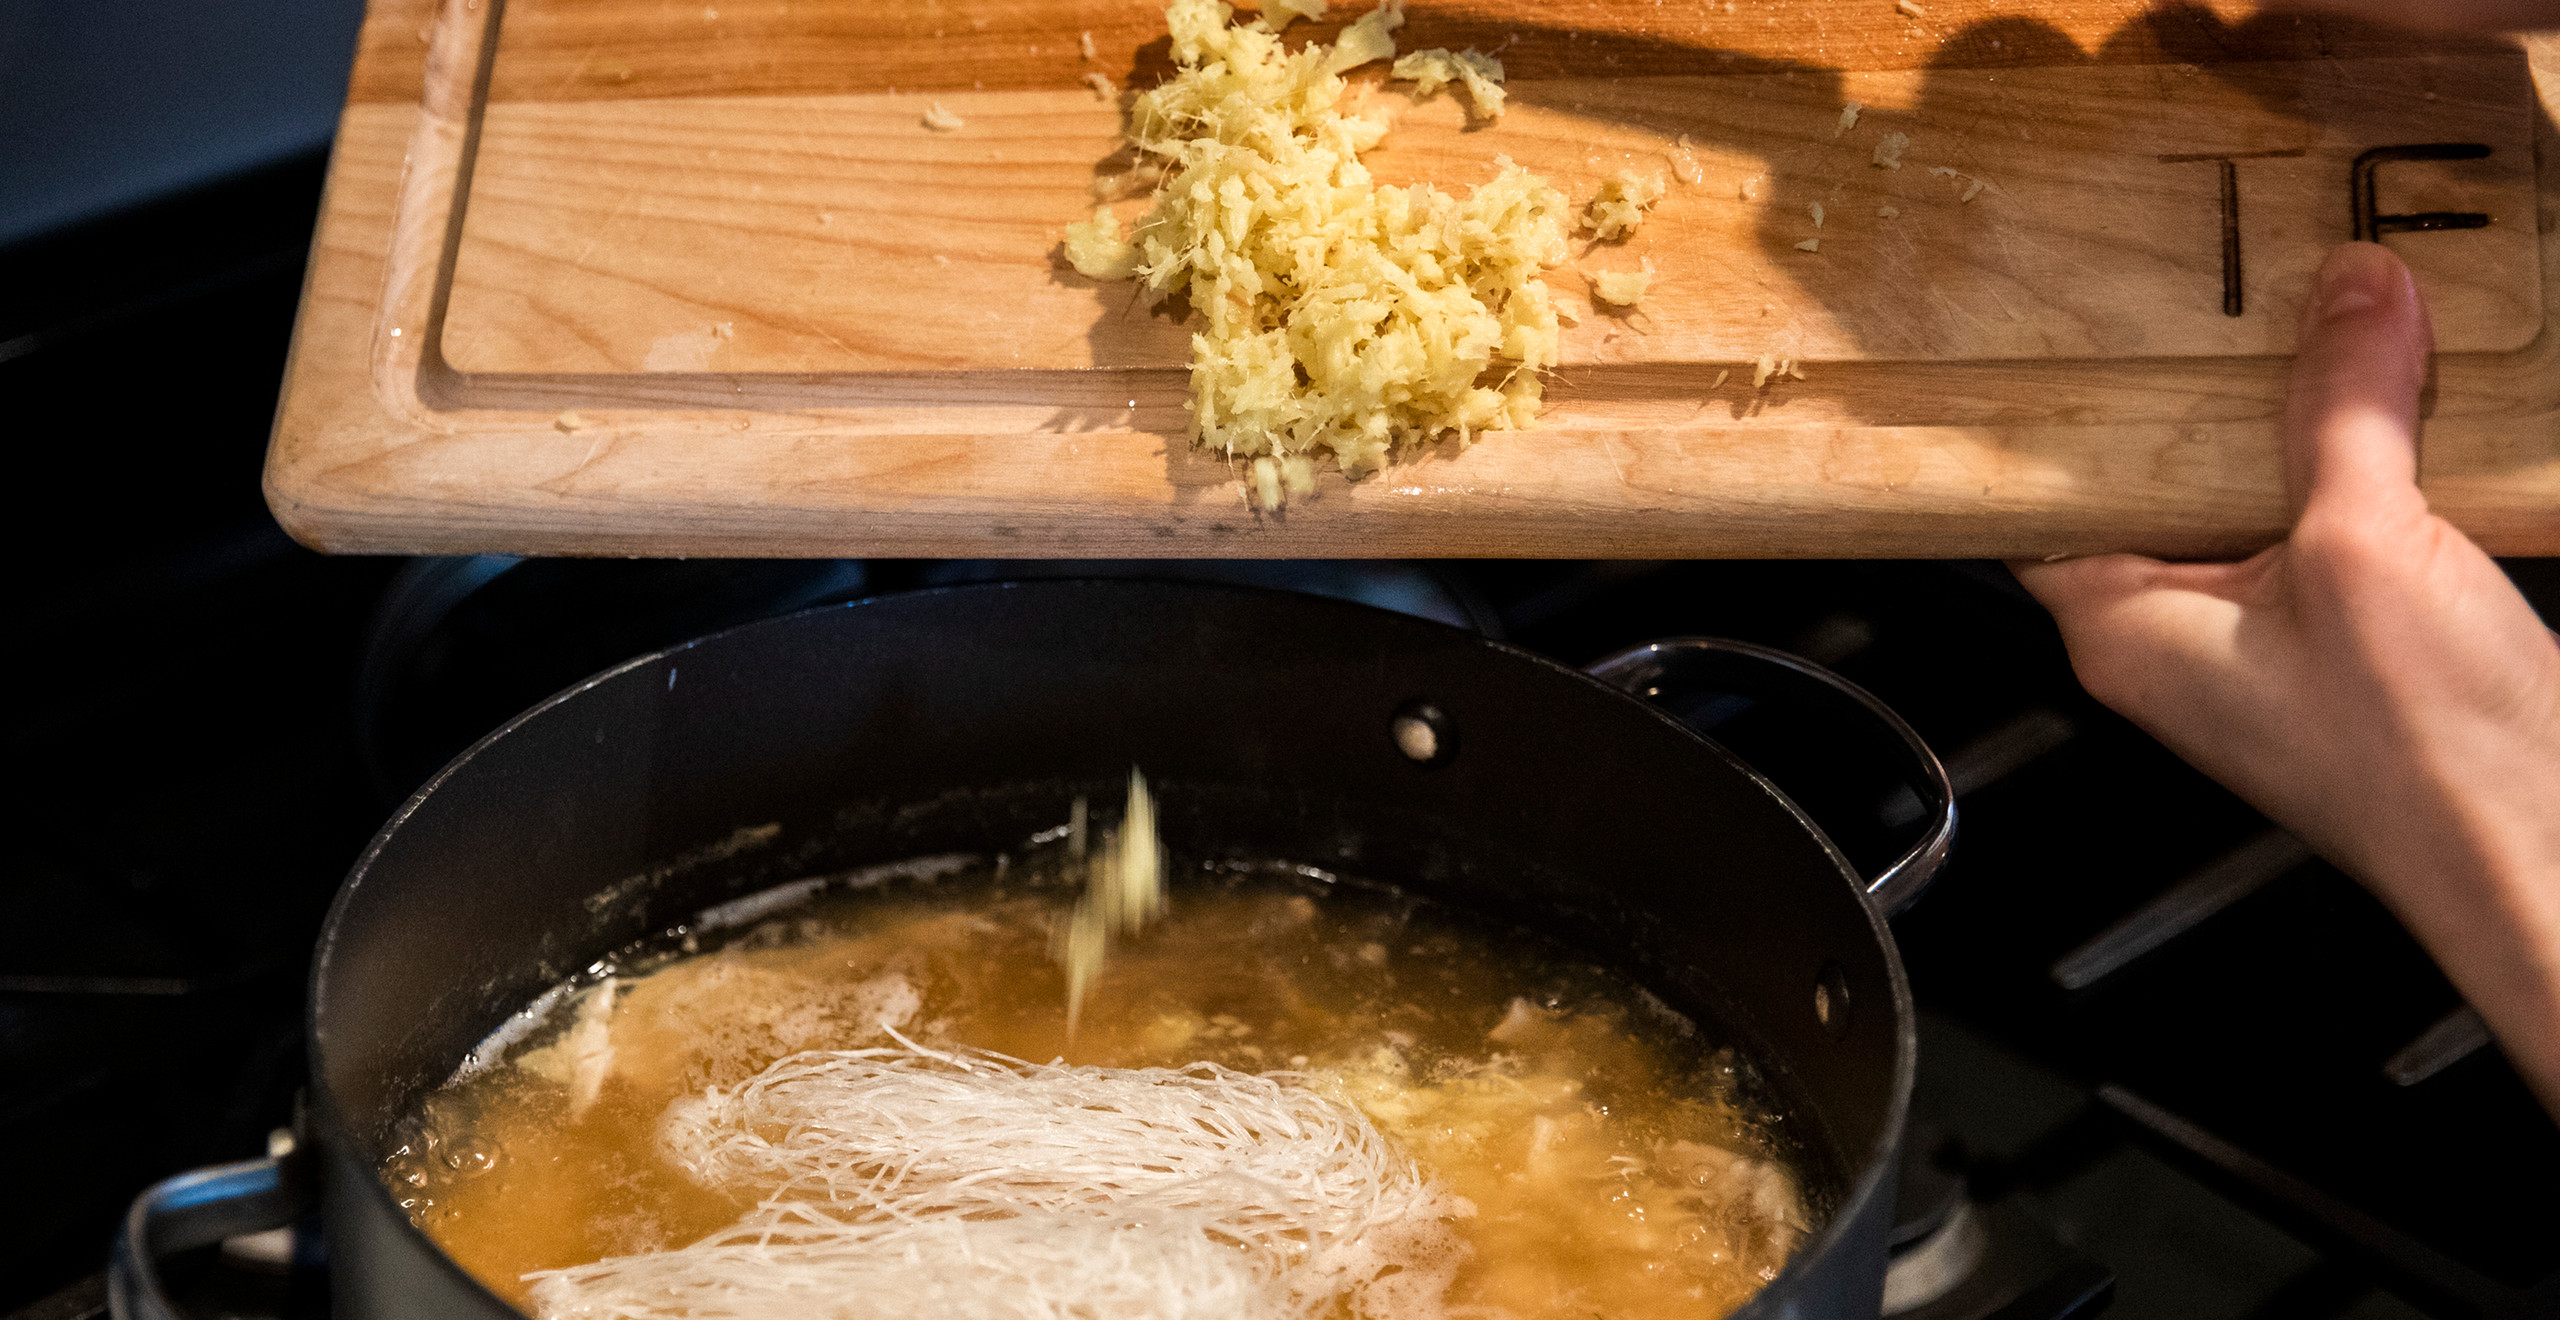 A hand scrapes chopped ginger from a wooden cutting board into a boiling pot of chicken broth and rice noodles.